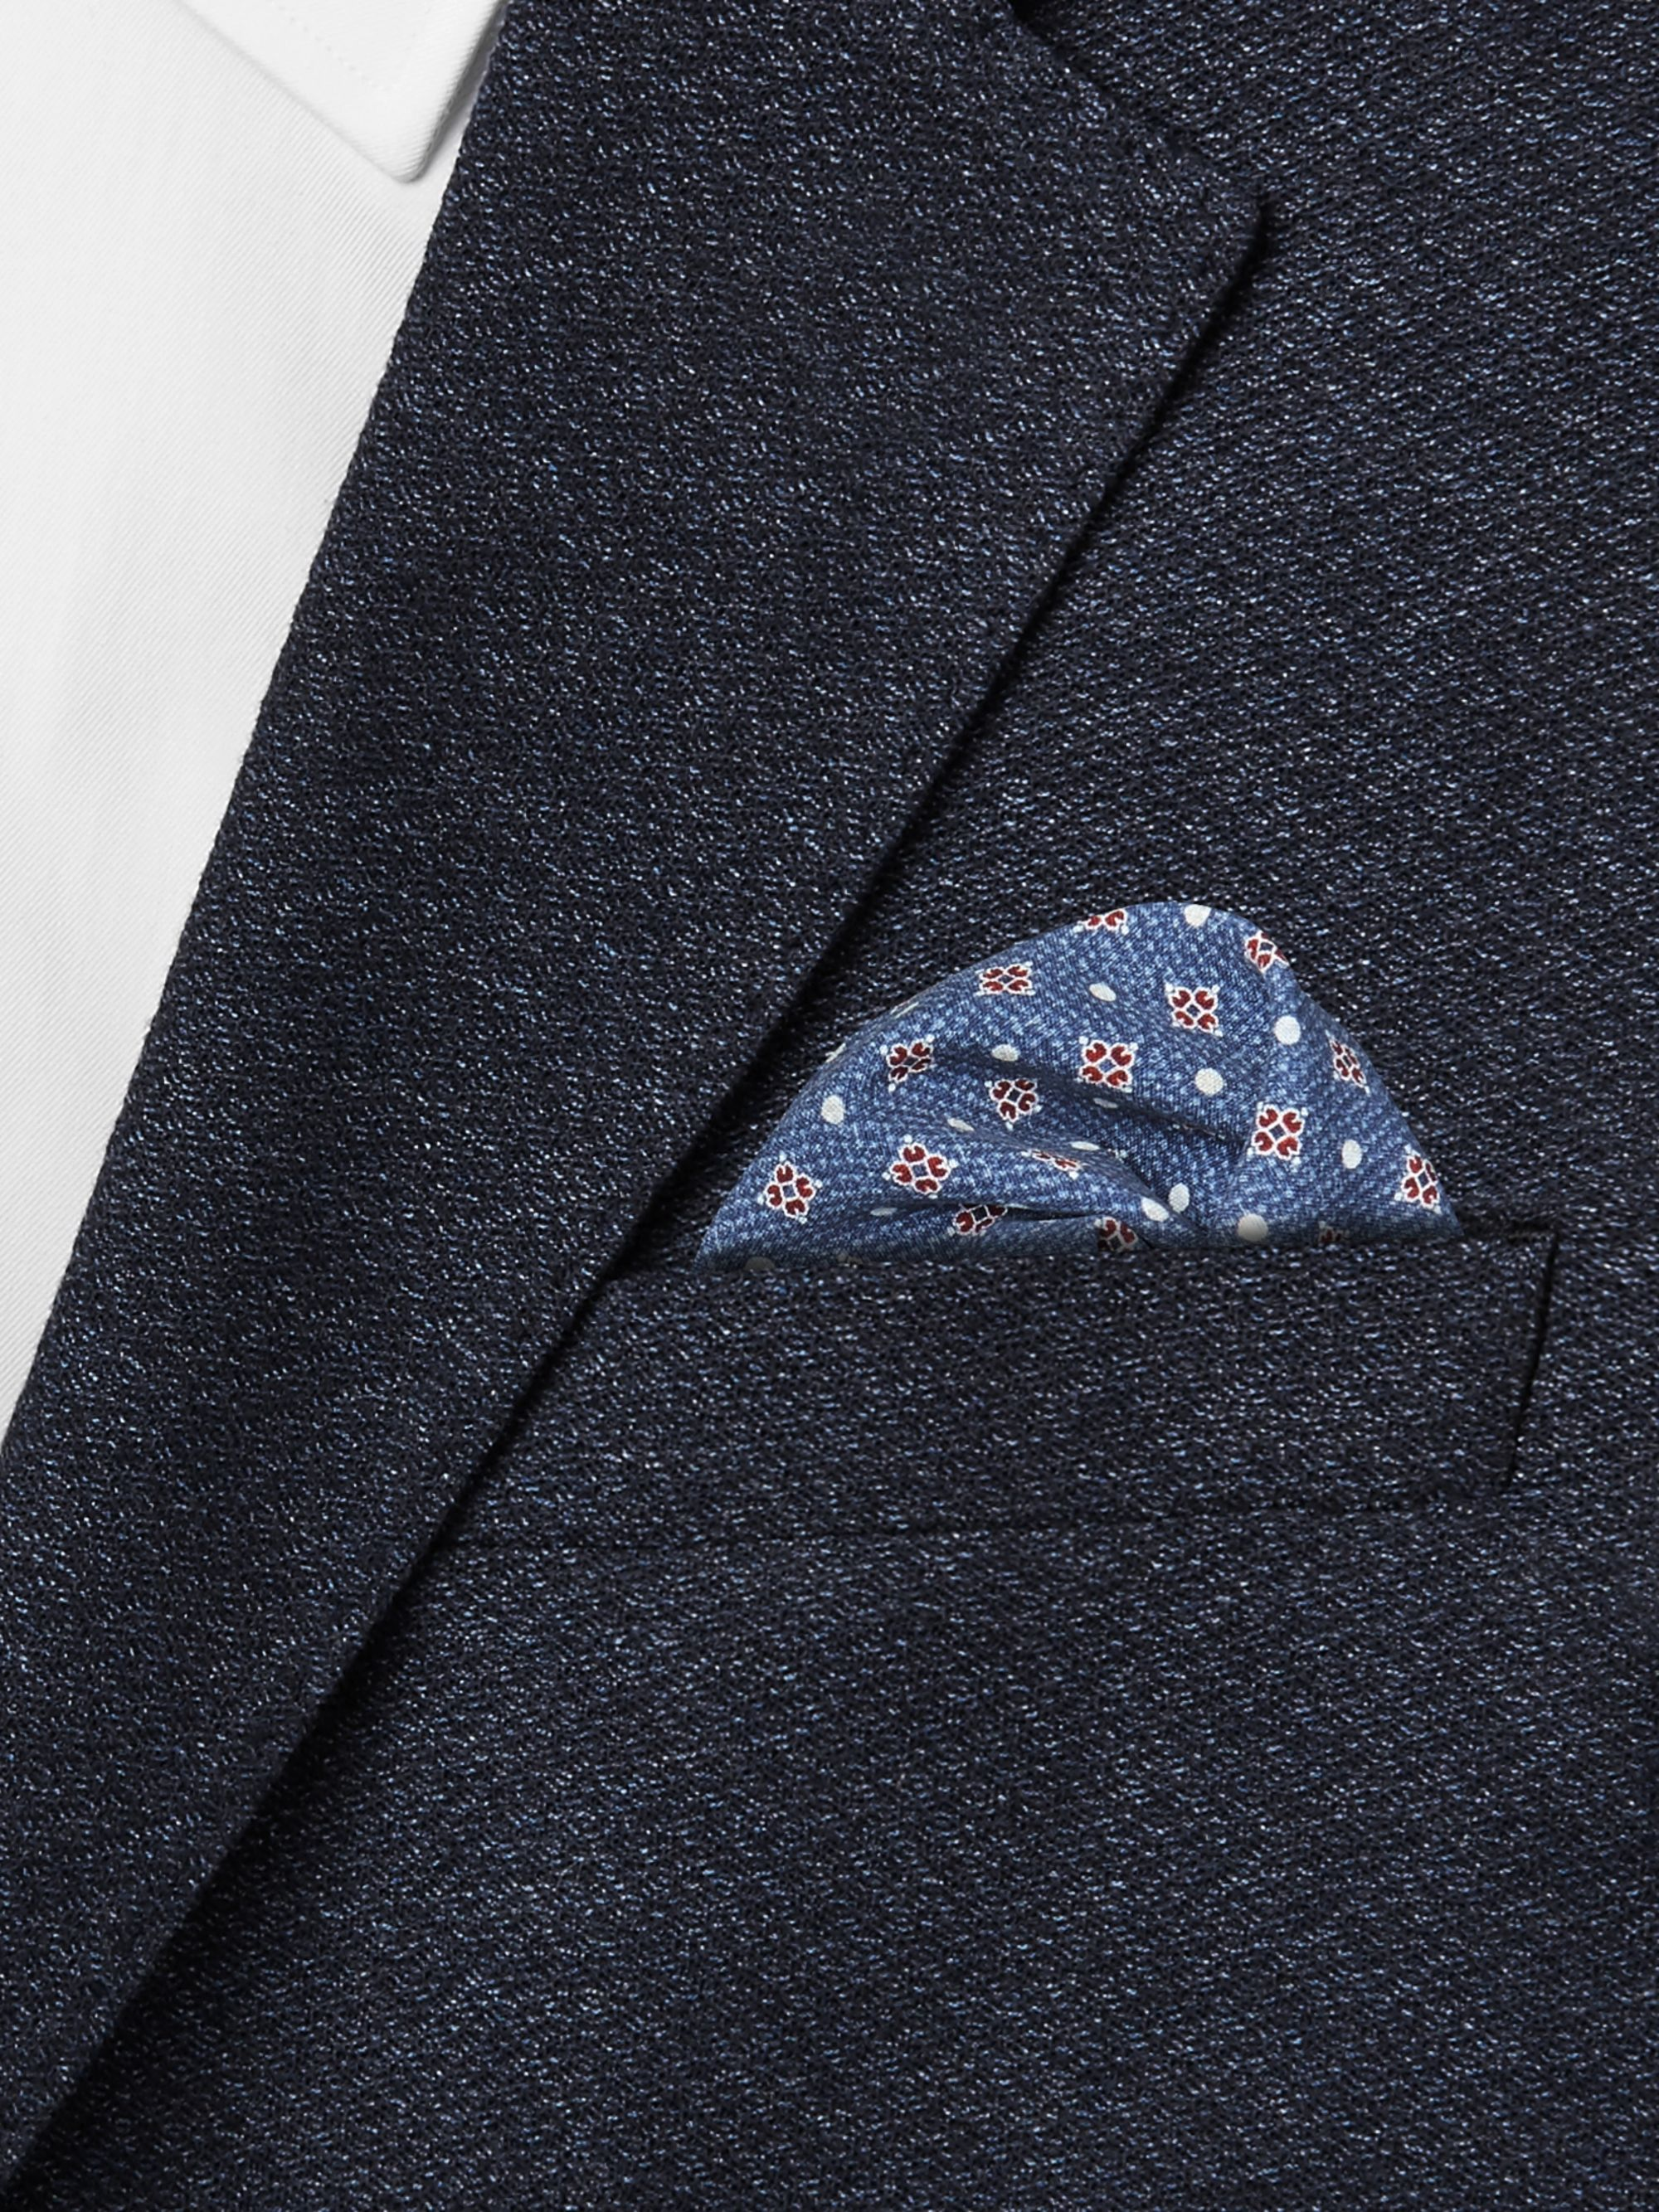 Brunello Cucinelli Reversible Printed Silk Pocket Square